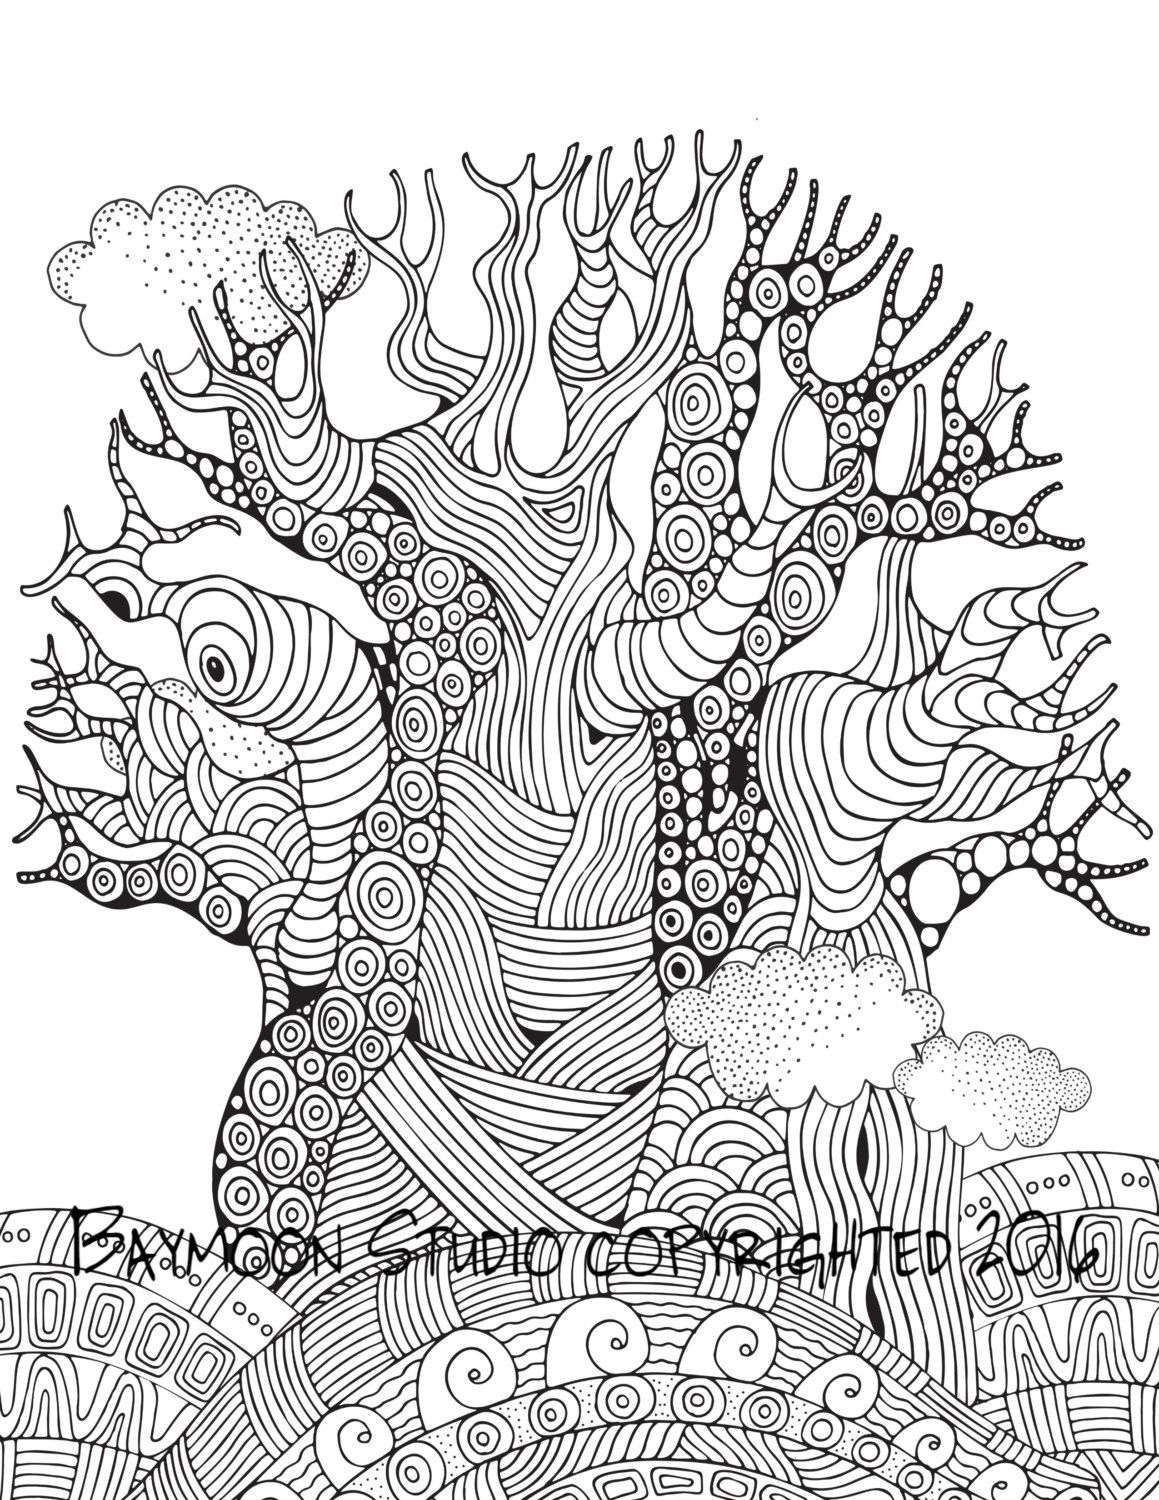 African Baobab Tree Coloring Page Printable By Baymoonstudio